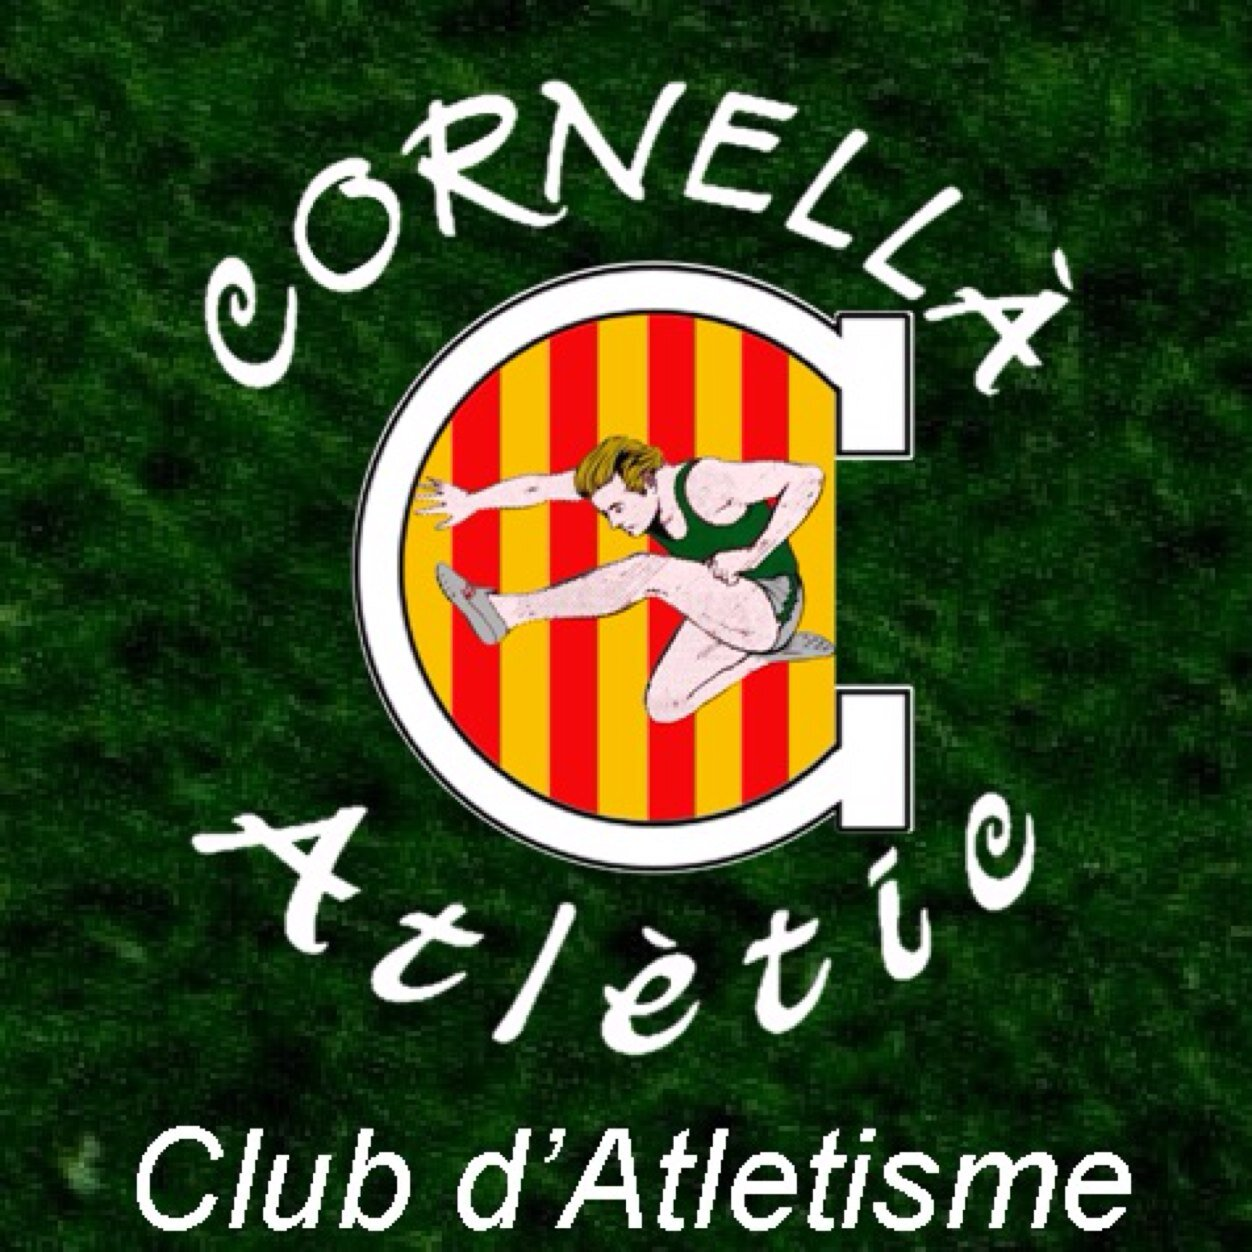 Cornella Atletic 2ce9c